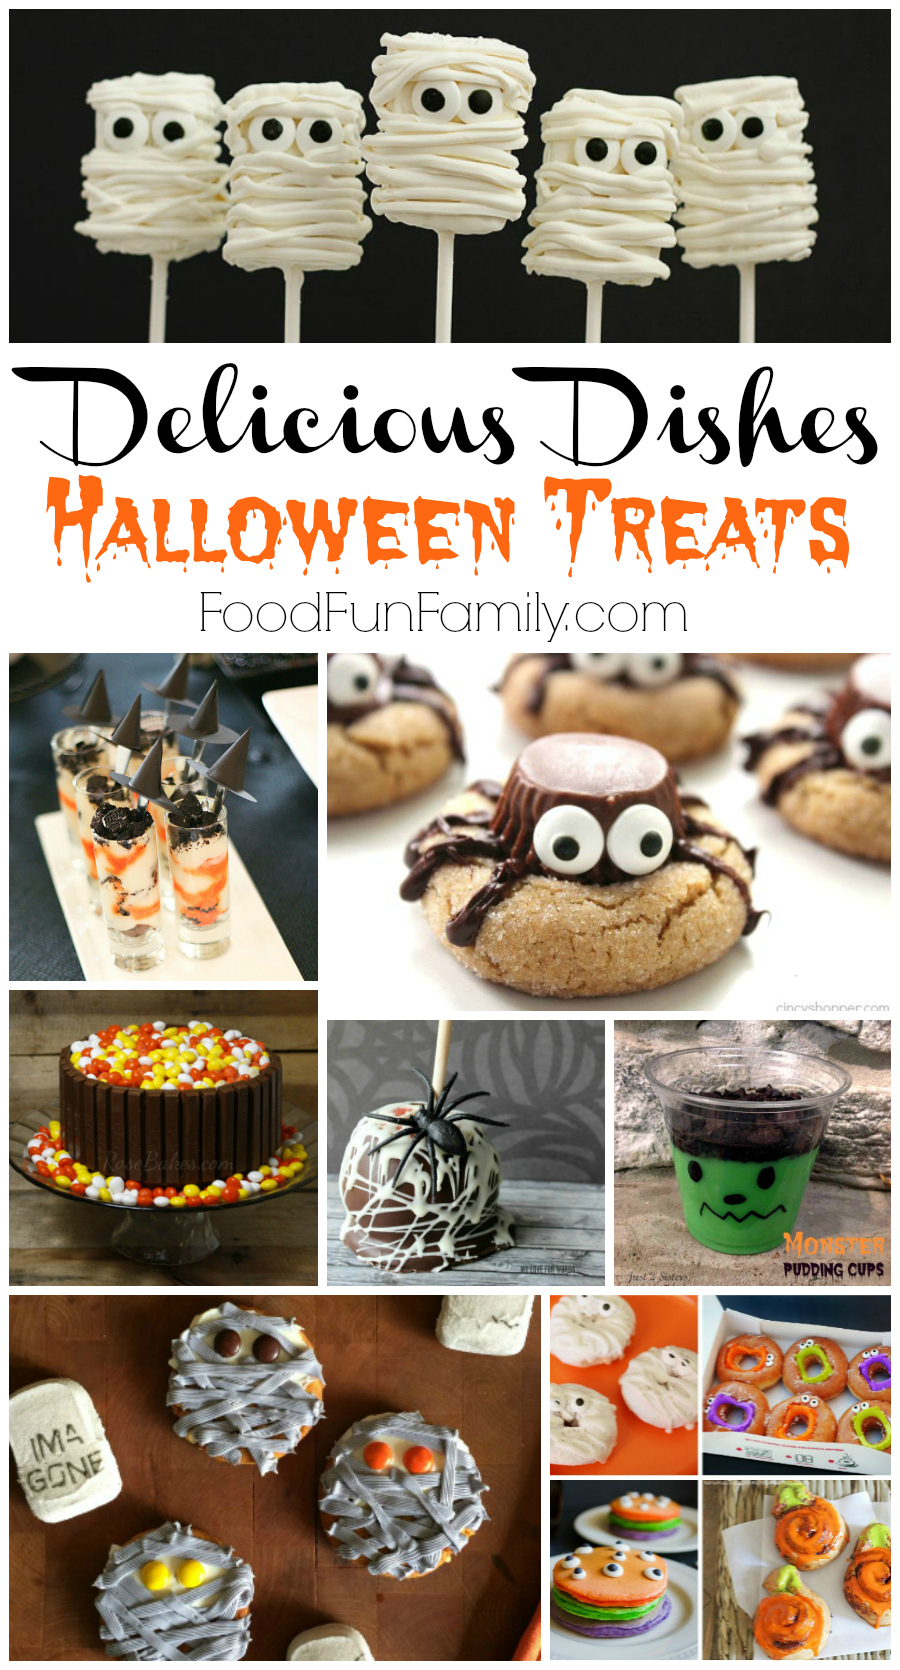 Delicious Dishes Recipes Party #40 - Halloween treats that the whole family will love at Food Fun Family